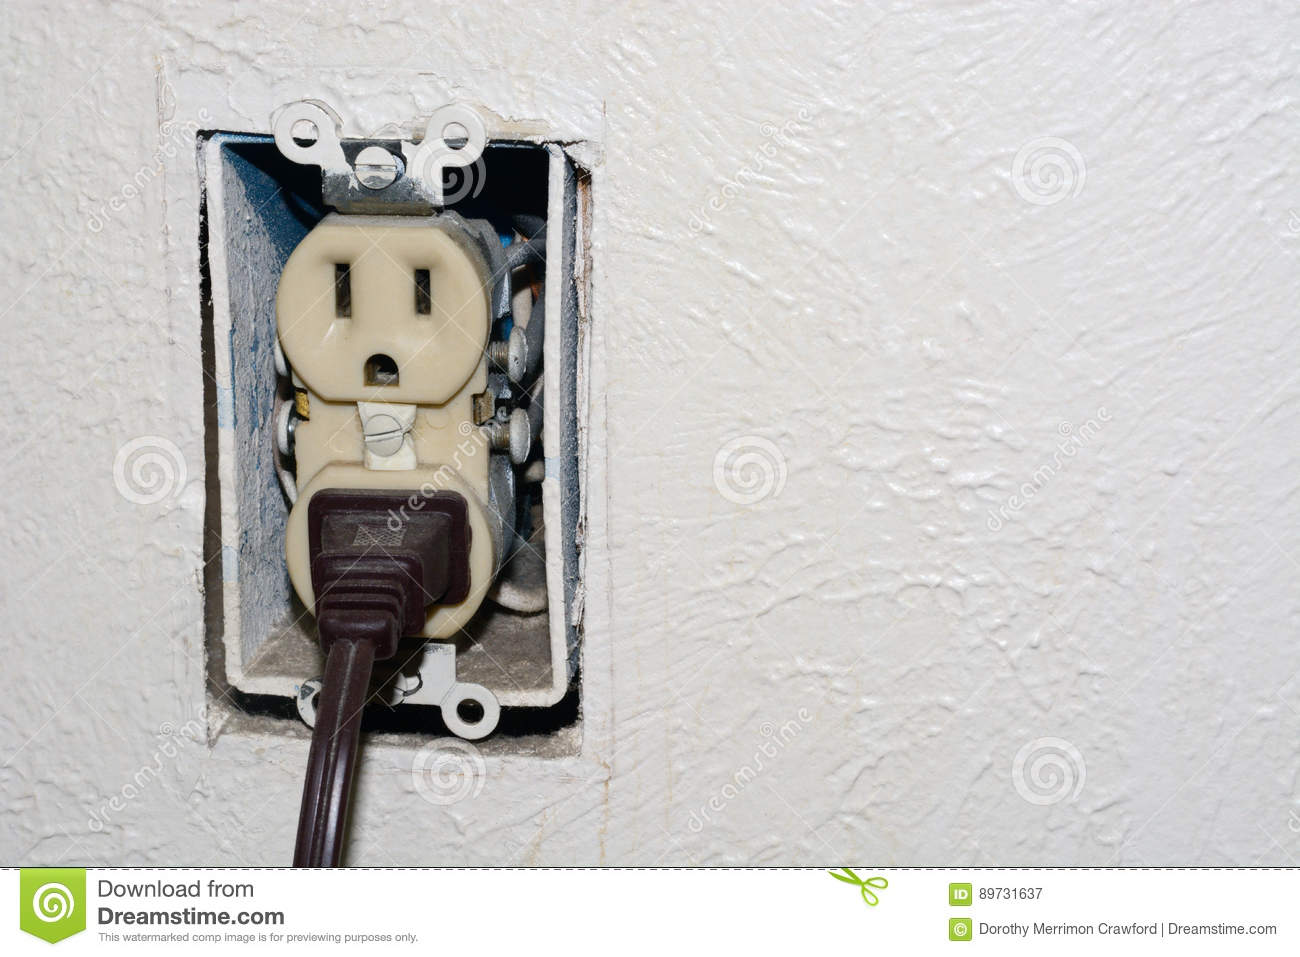 hight resolution of home danger of electrical outlet without cover plate with electrical plug plugged into socket